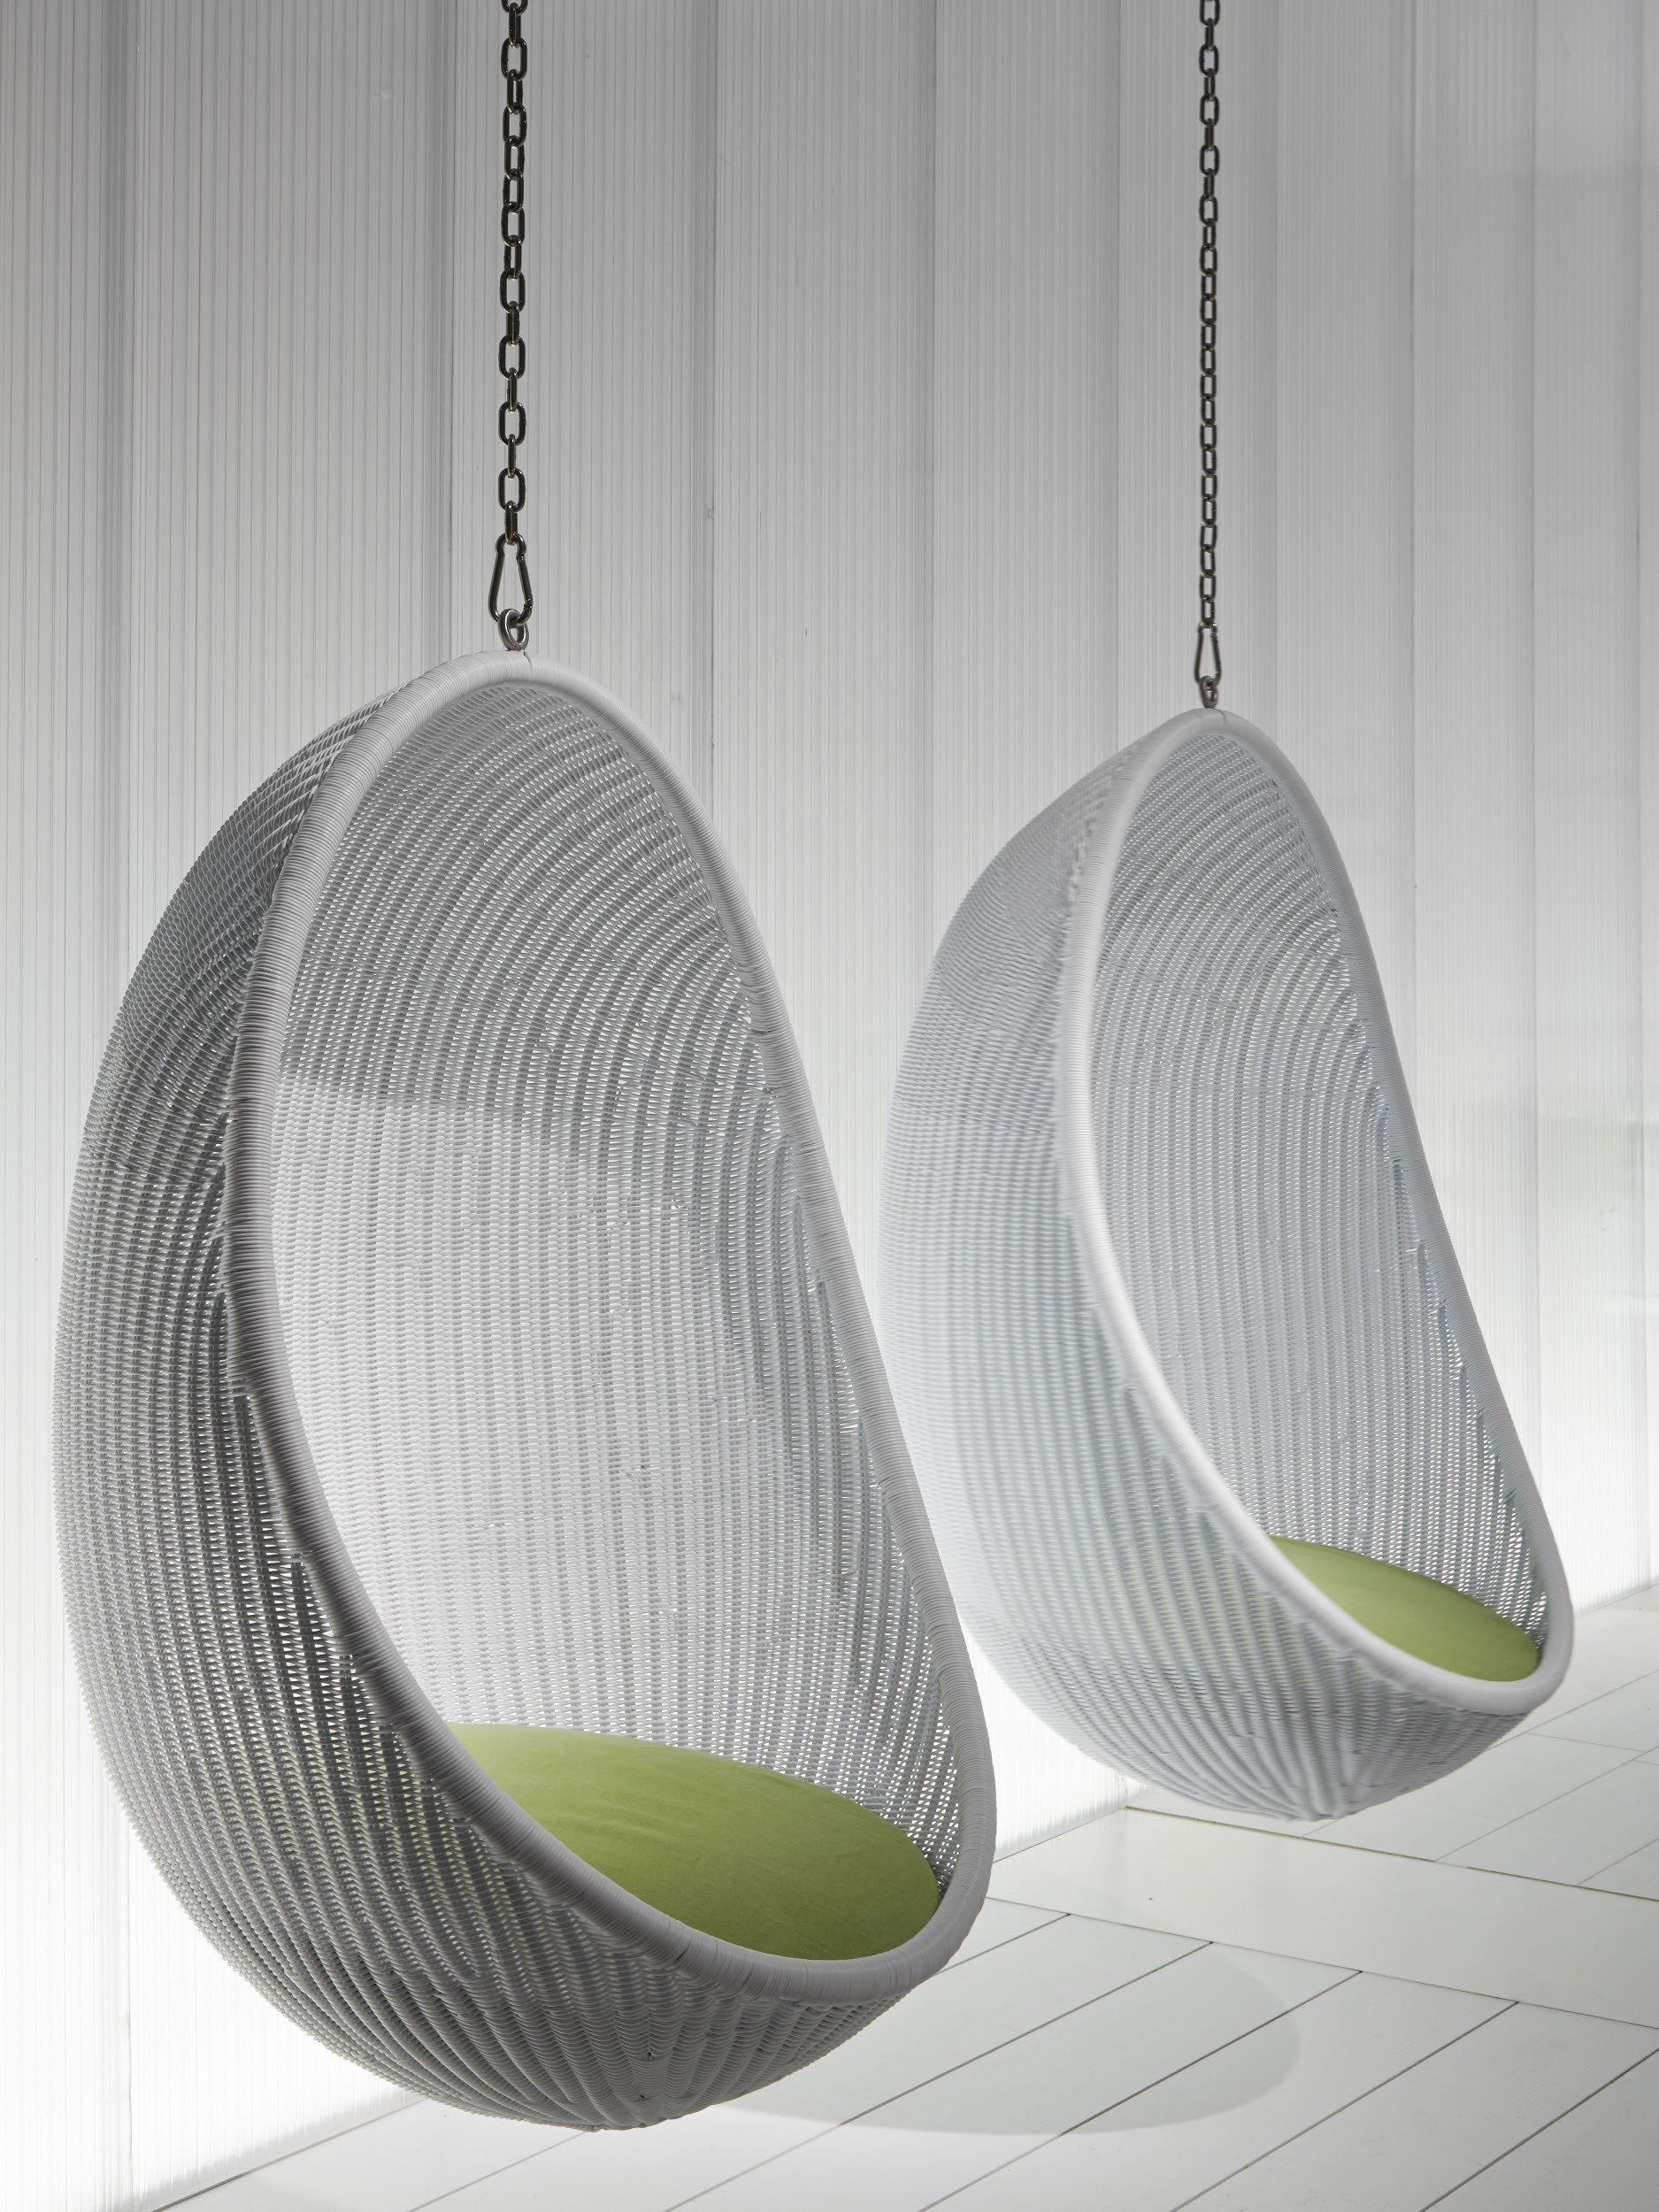 Etonnant Furniture: Nice Looking White Woven Rattan Two Hanging Egg Chair With White  Wooden Wall Panels As Decorate Classy Veranda Furnishing Designs. Indoor  Hanging ...